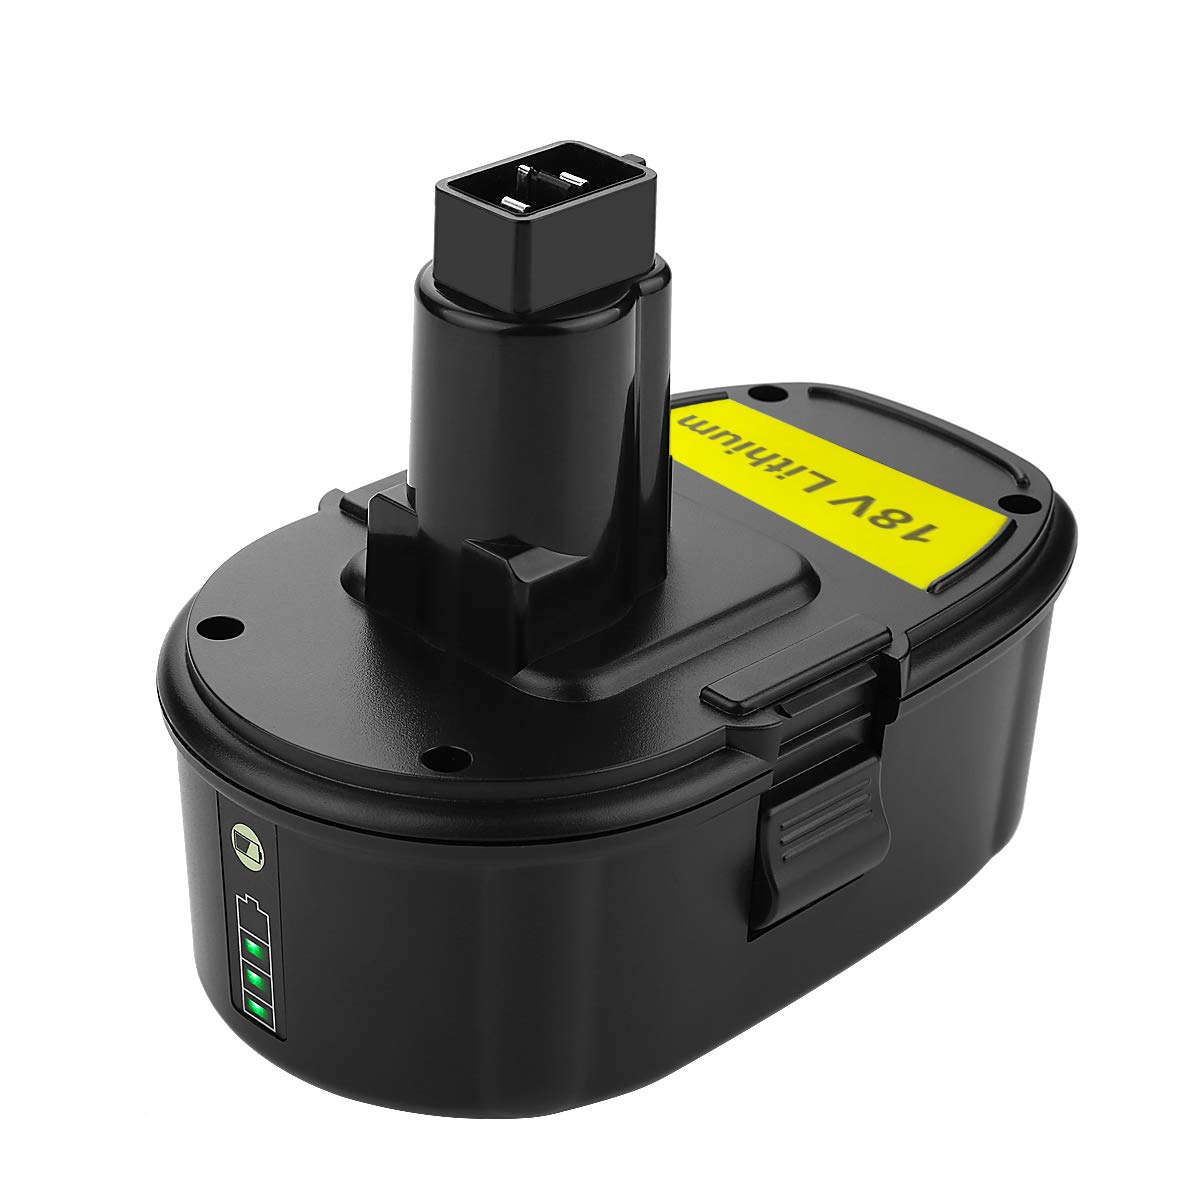 ANTRobut Replacement for Lith-ion DC9096 3000mAh 18V battery Replacement for Dewalt 18 volt XRP battery DC9096 DC9098 DC9099 DE9039 DE9095 DE9096 DE9098 DW9095 DW9096 Cordless Drill dewalt 18v Battery